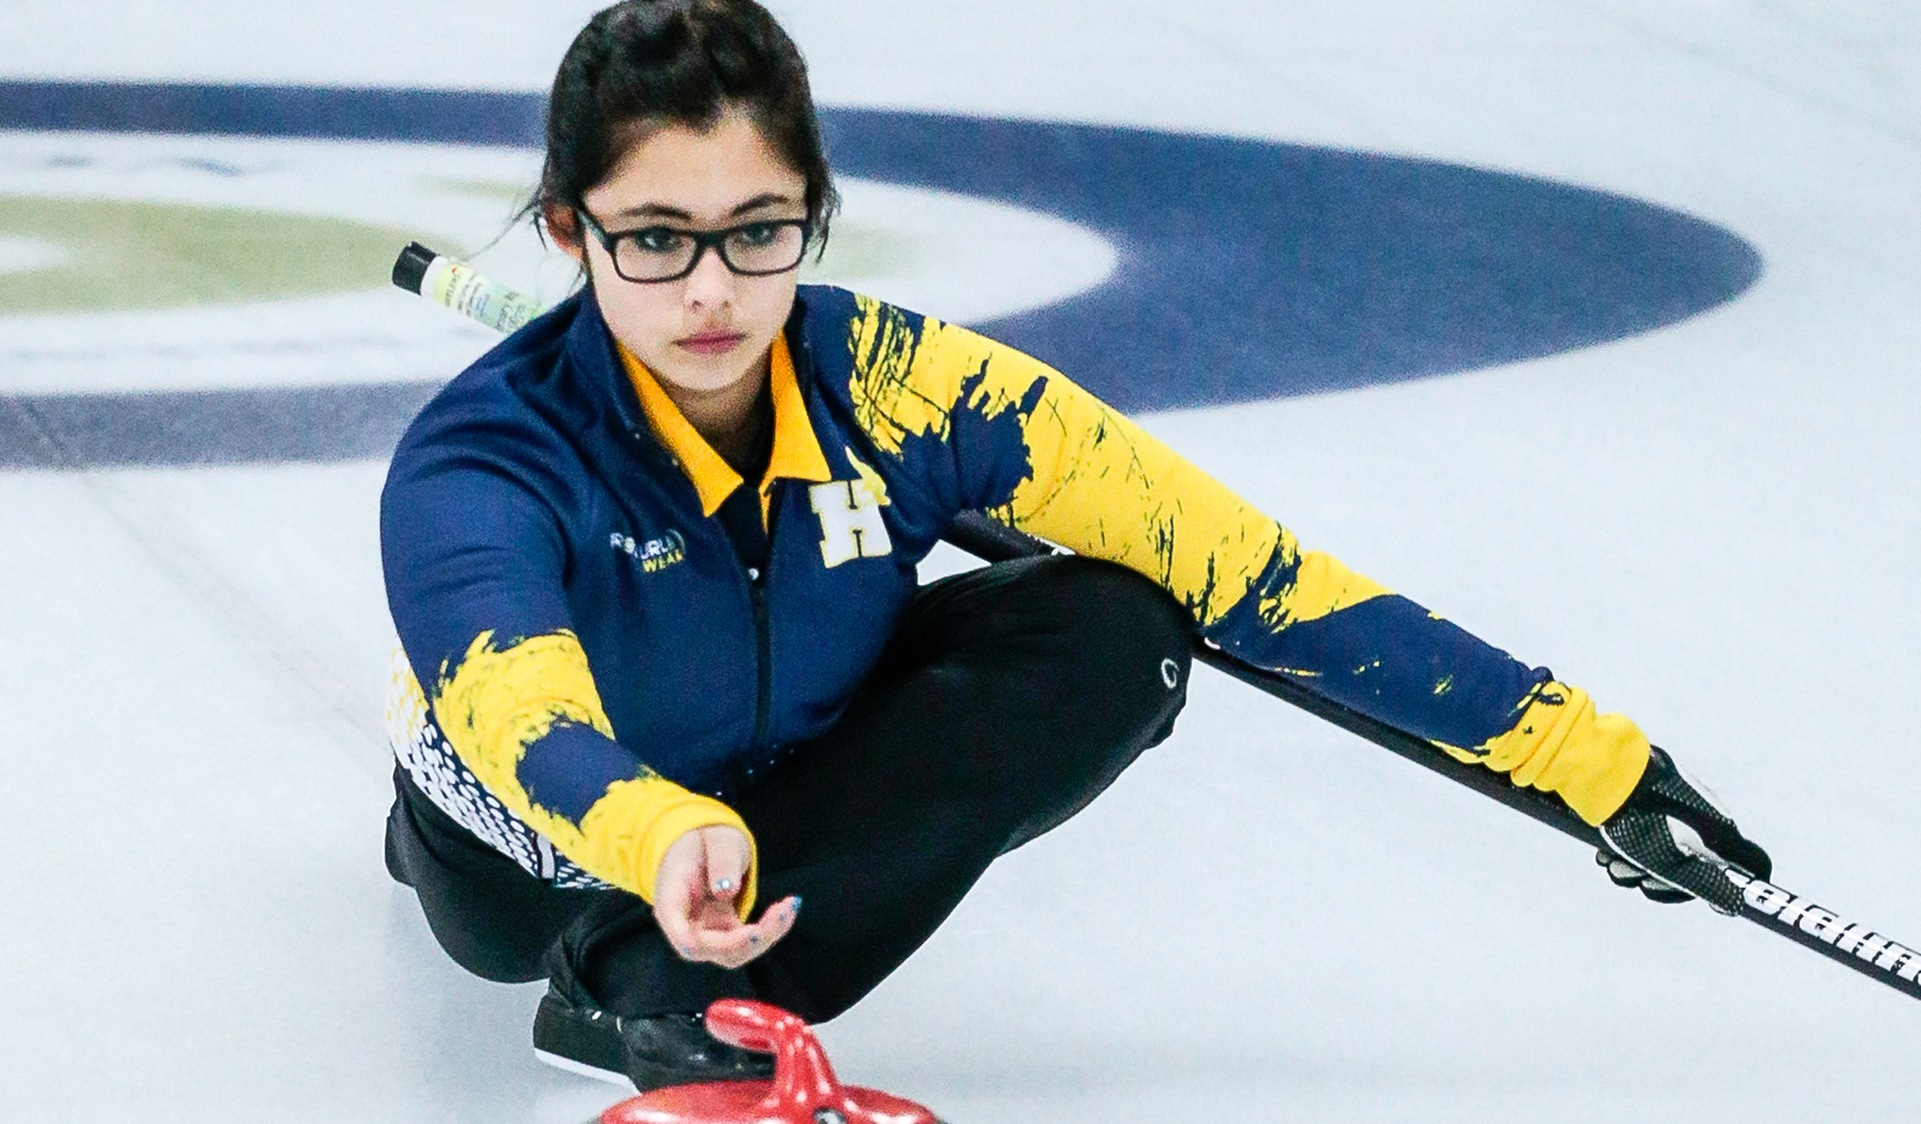 HAWKS TO HOST HUMBER CUP CURLING BONSPIEL